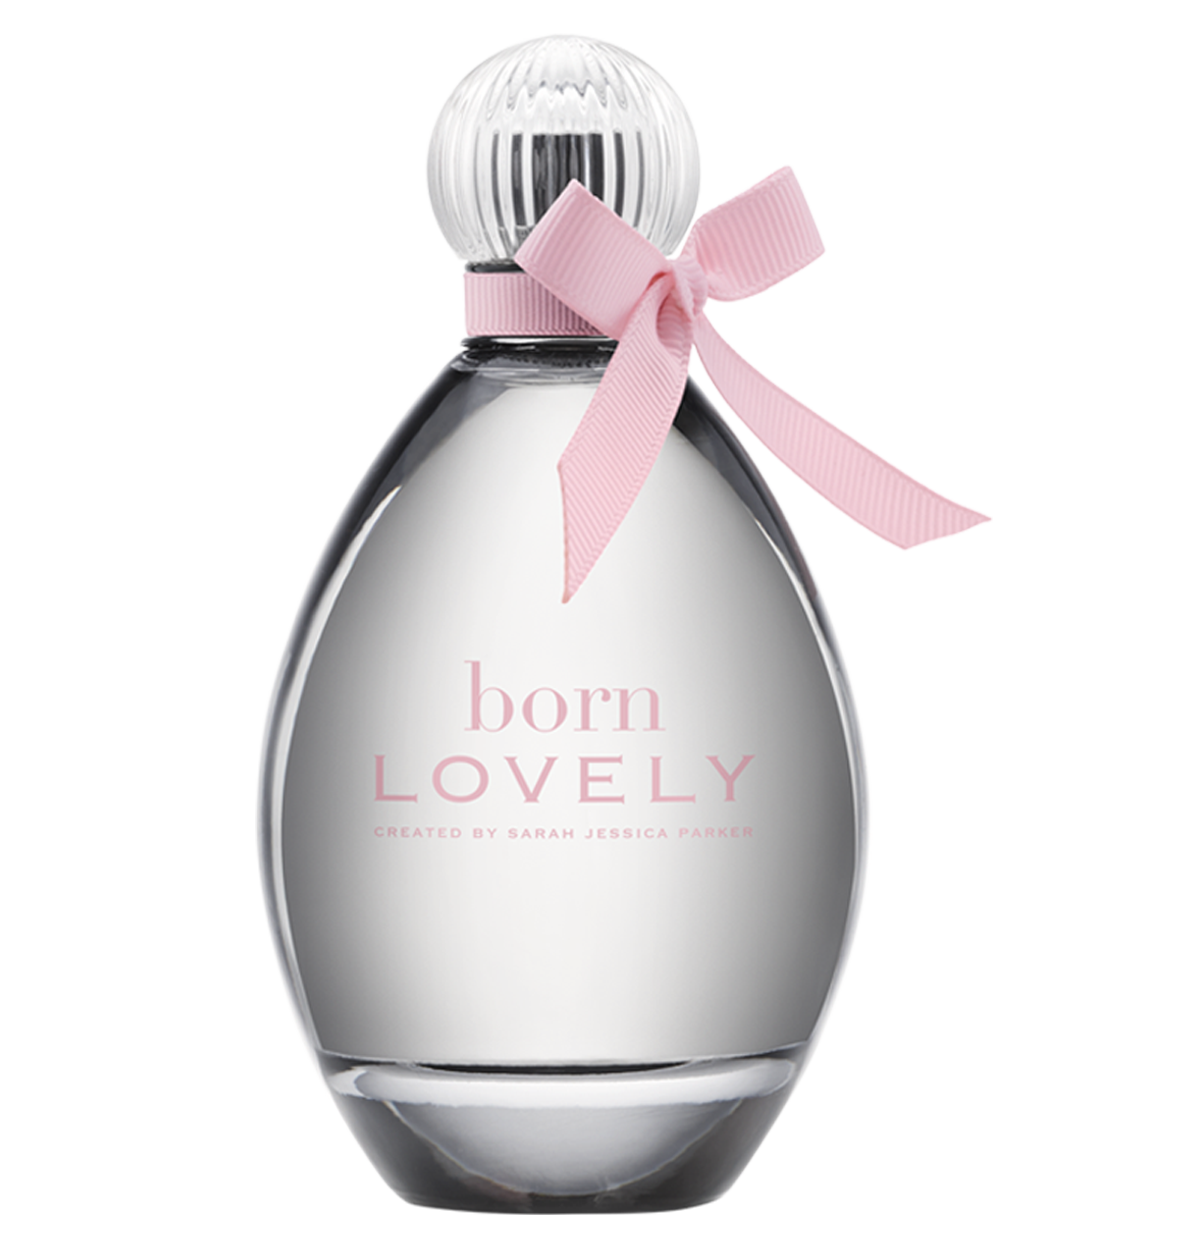 Born Lovely Eau de Parfum